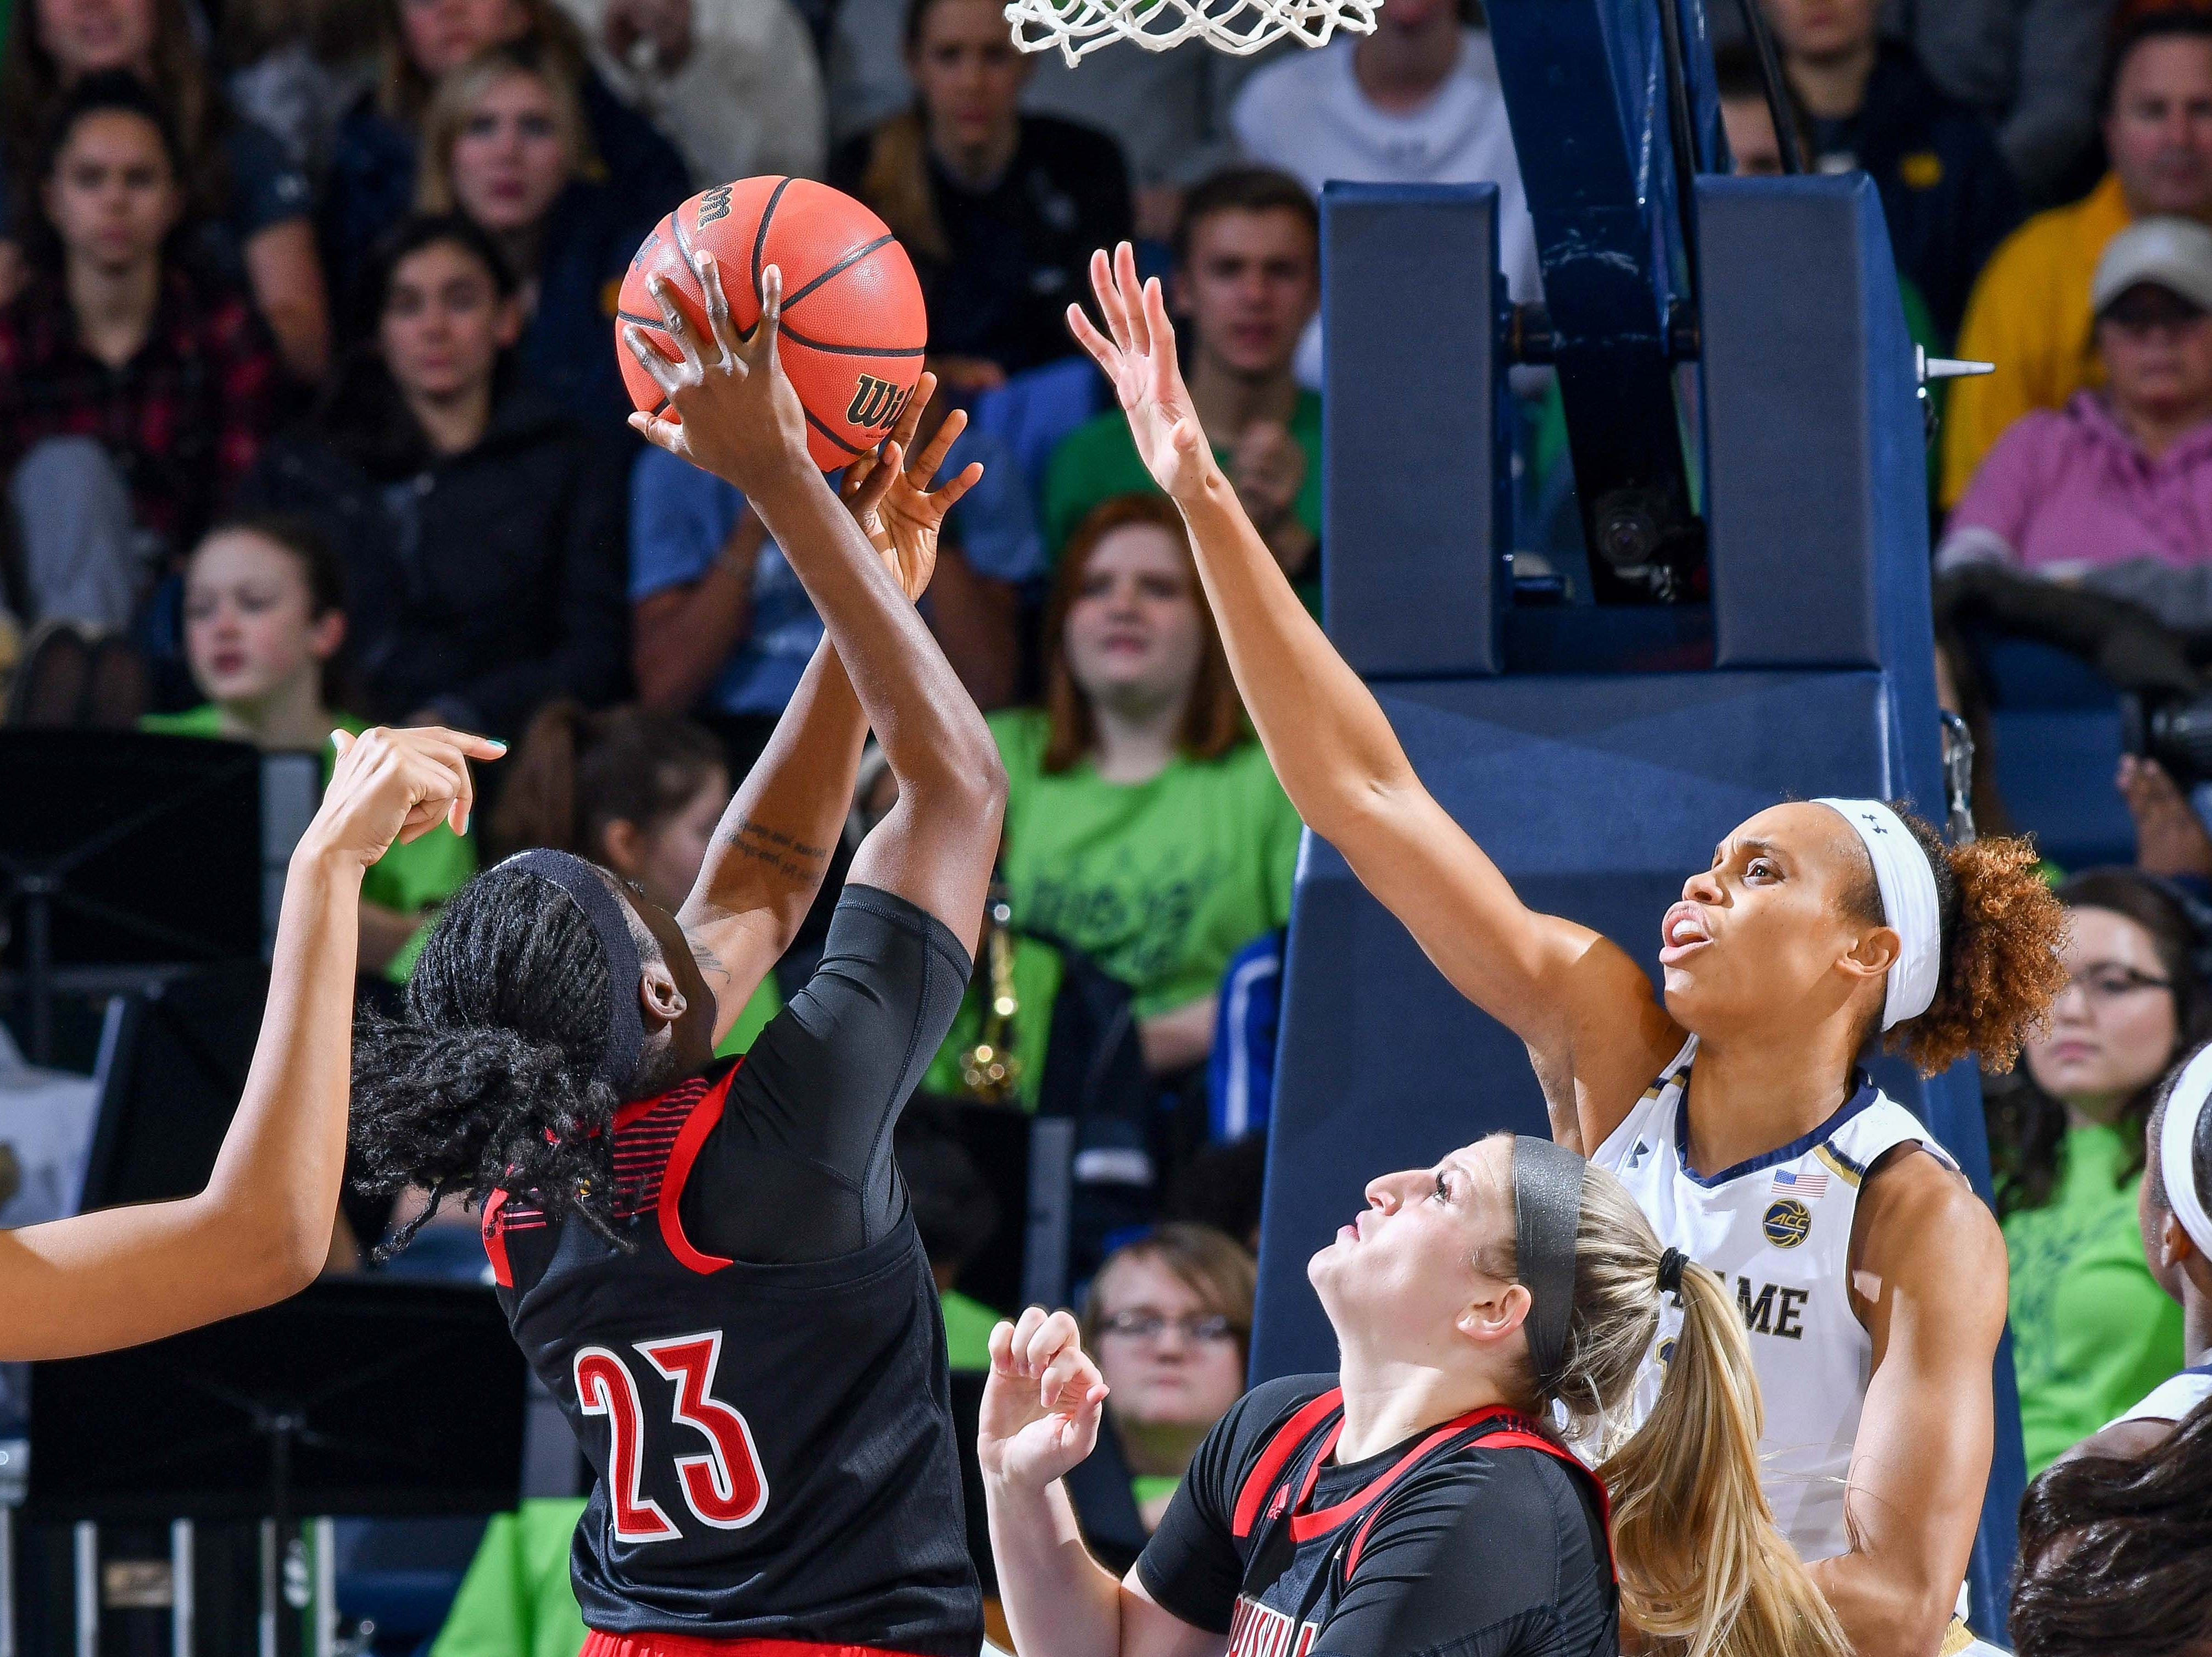 Jan 10, 2019; South Bend, IN, USA; Louisville Cardinals guard Jazmine Jones (23) goes up for a shot as Notre Dame Fighting Irish forward Brianna Turner (11) defends in the second half at the Purcell Pavilion. Mandatory Credit: Matt Cashore-USA TODAY Sports